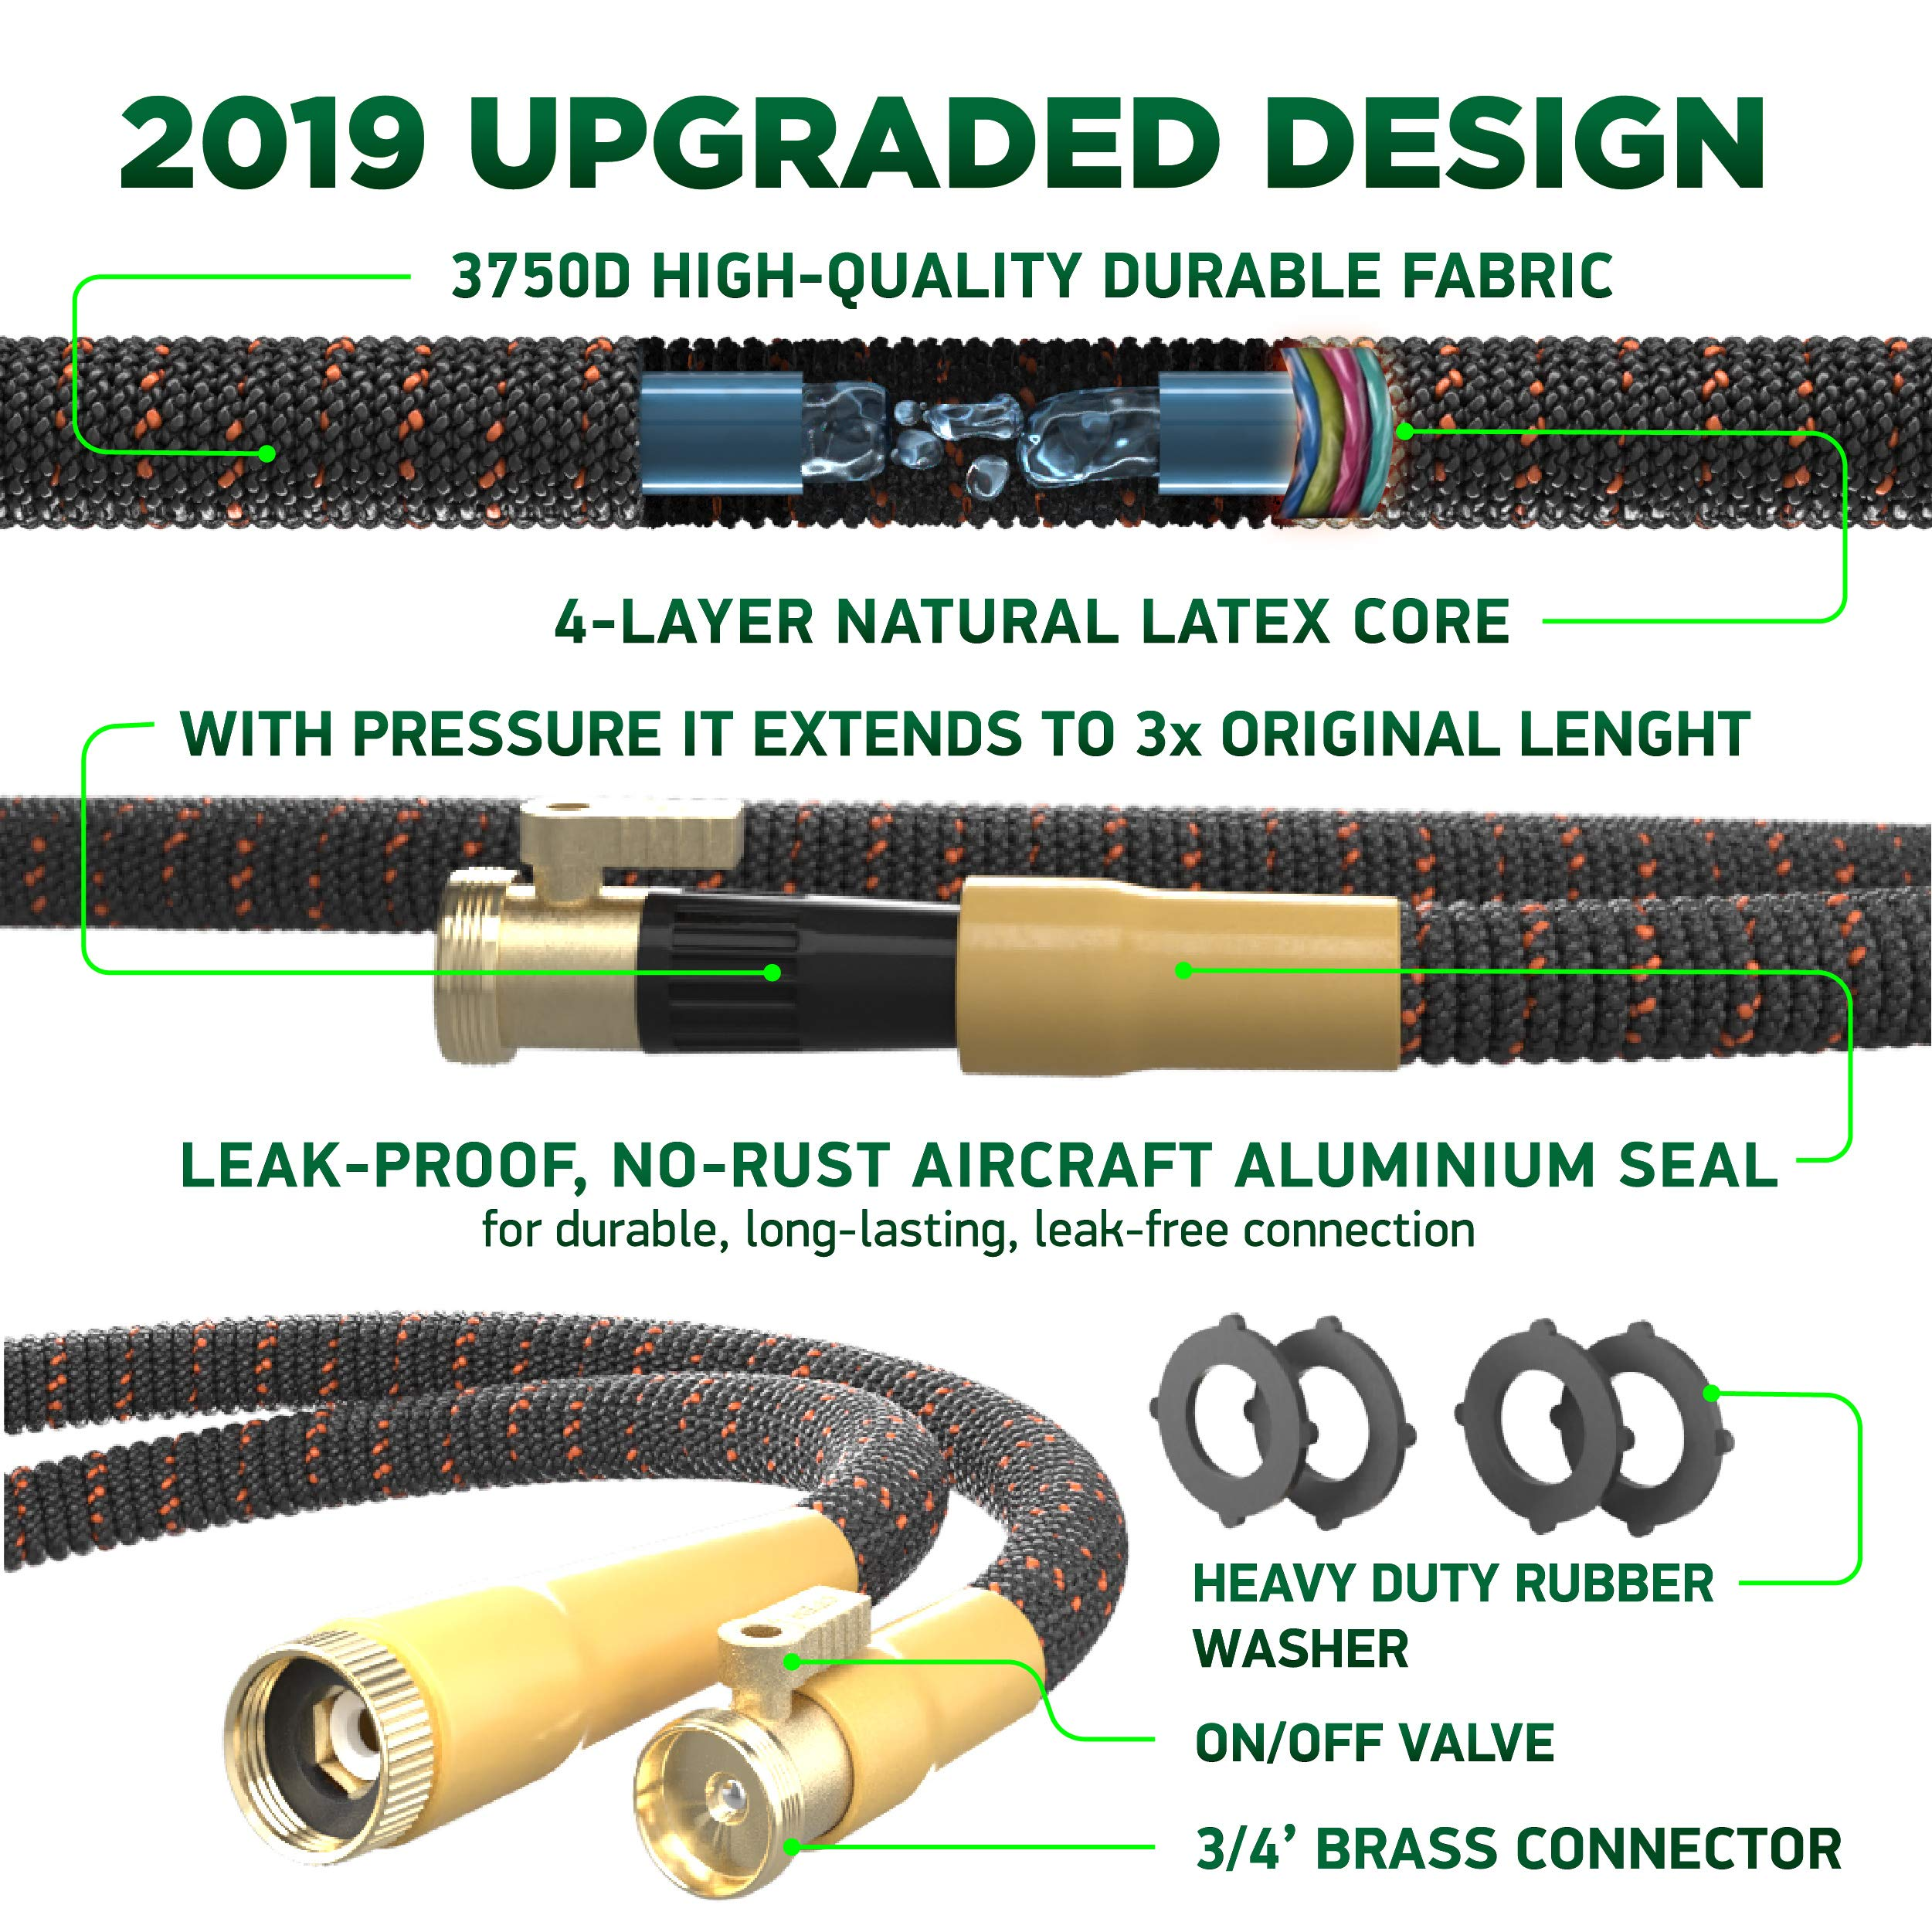 [UPGRADED 2019] 50 Feet Expandable Garden Water Hose - Superior Strength 3750D | 4-Layers Latex | Extra-Strong Brass Connectors | 10-Way Durable Zinc Spray Nozzle, 2-Way Pocket Flexible Splitter by TBI Pro (Image #3)